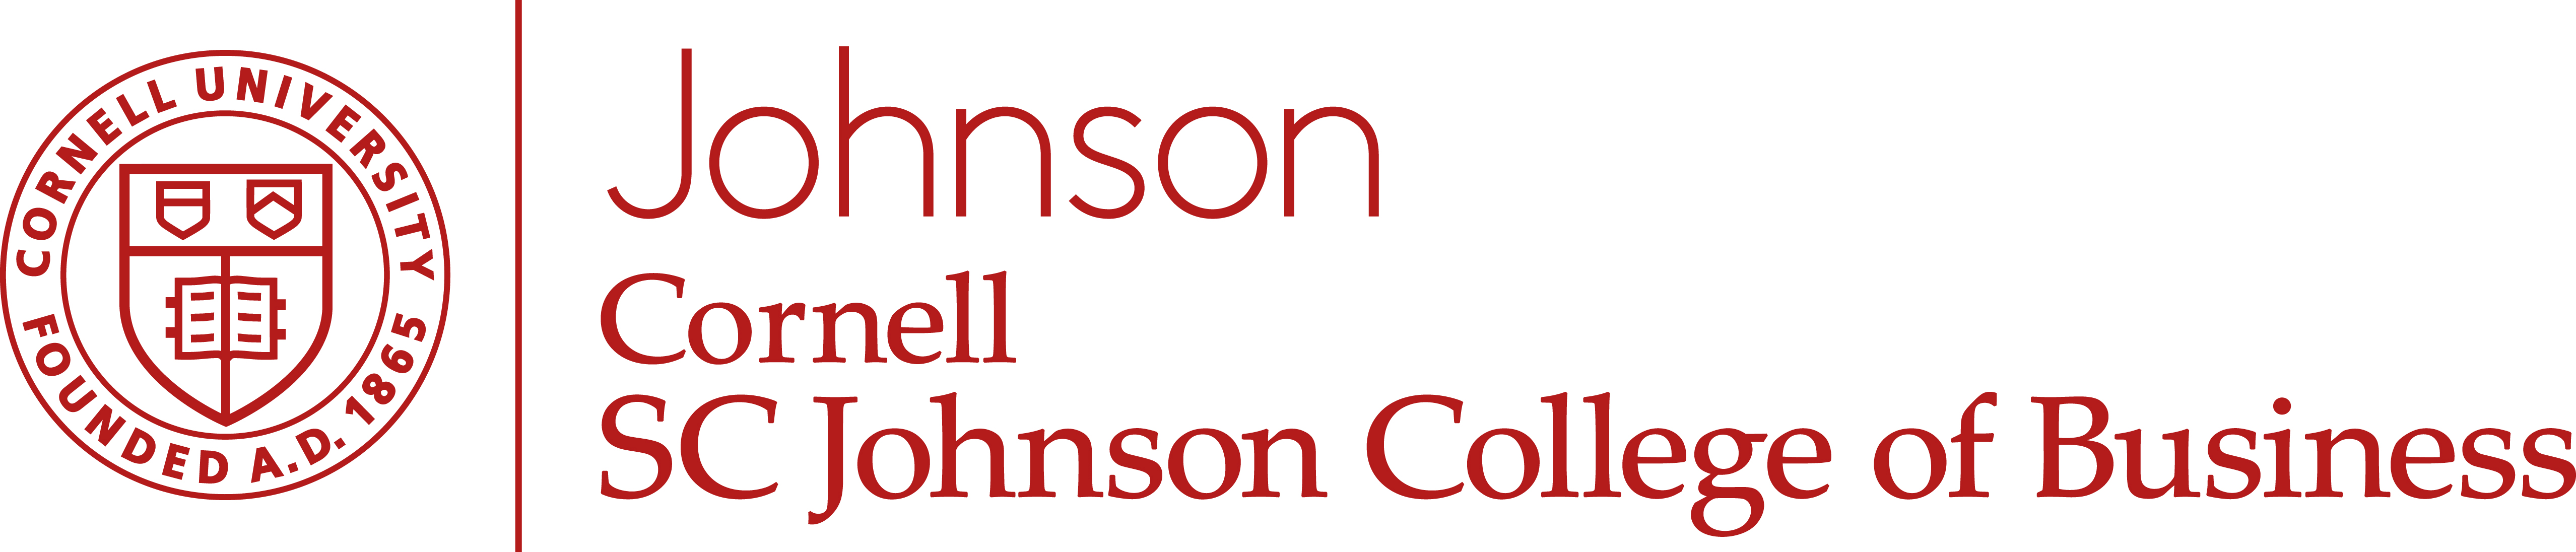 Johnson Cornell School of Business